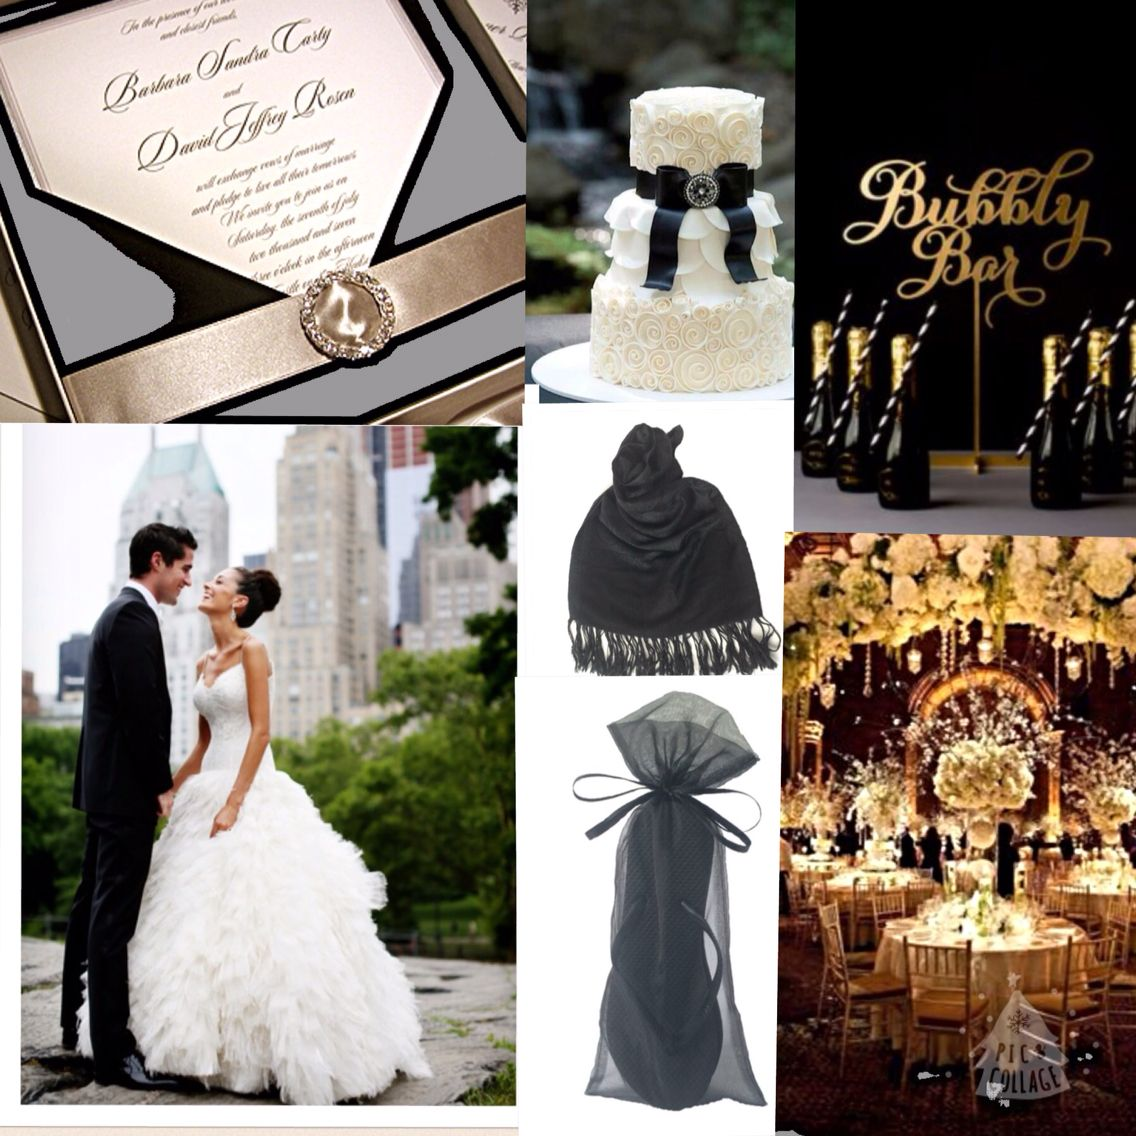 More Black Tie Wedding Inspiration with MPS flip flops and pashminas!